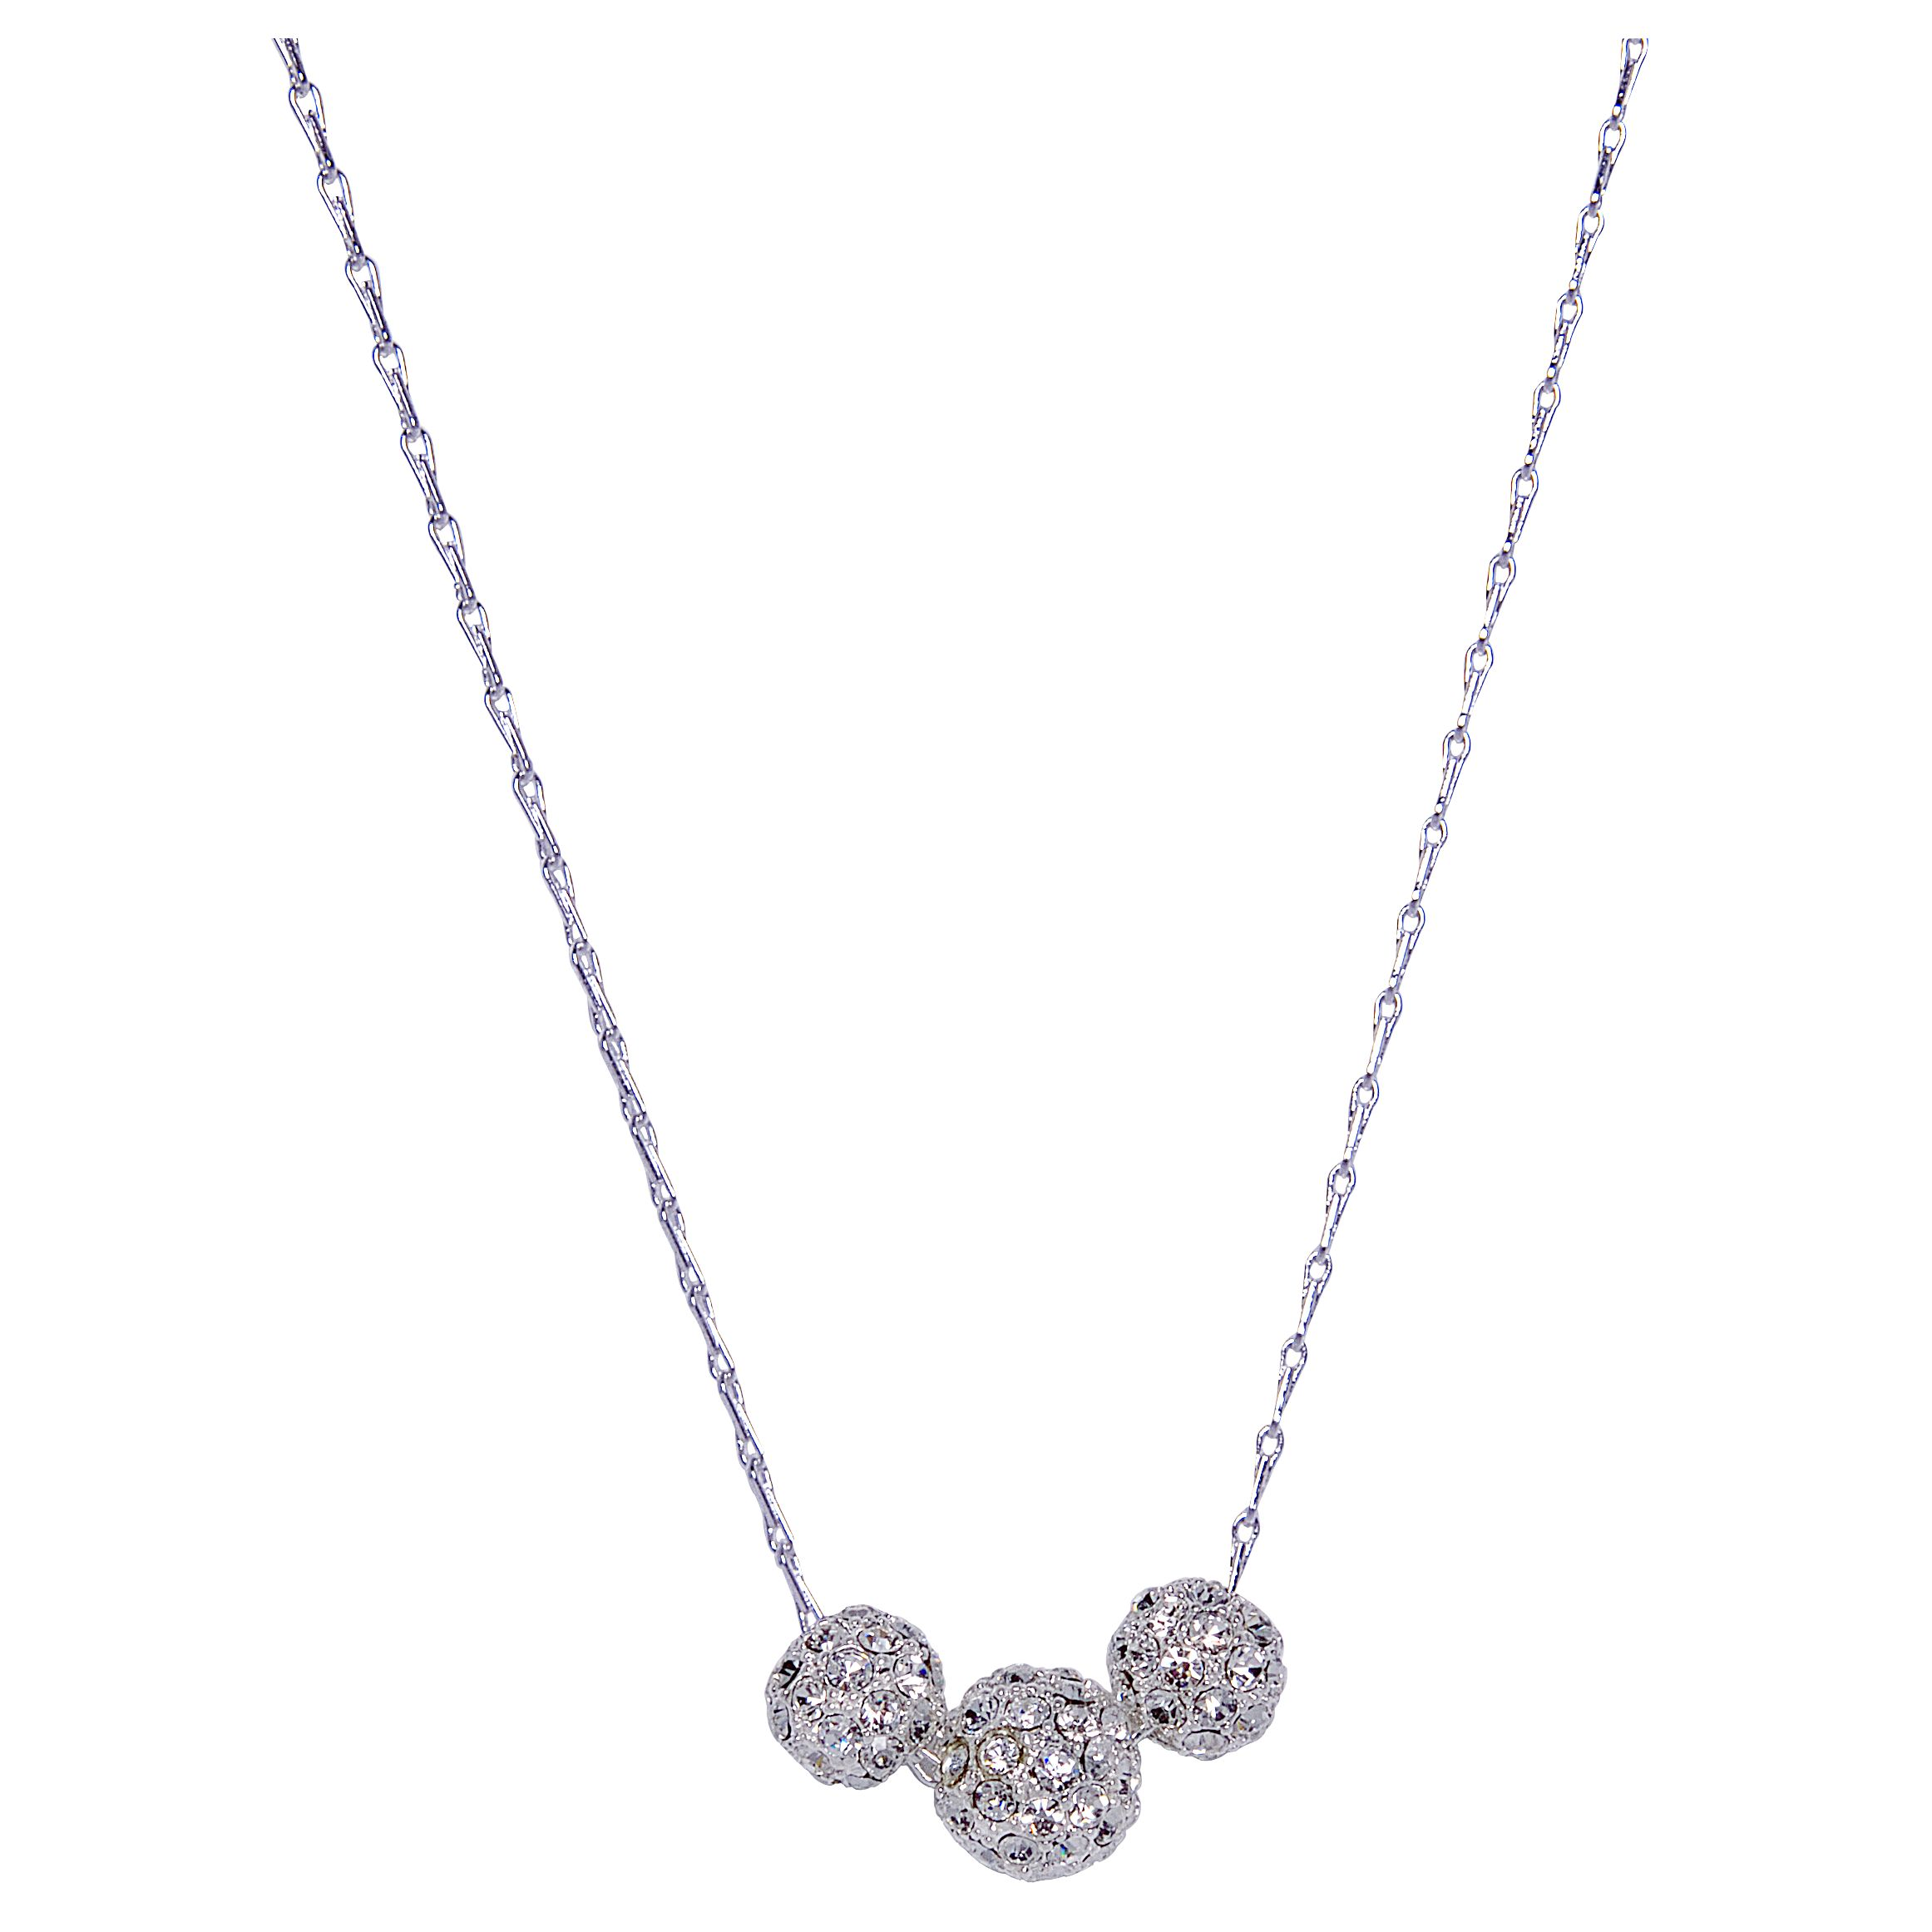 Monet Silver Cubic Zirconia Pave Crystal Necklace